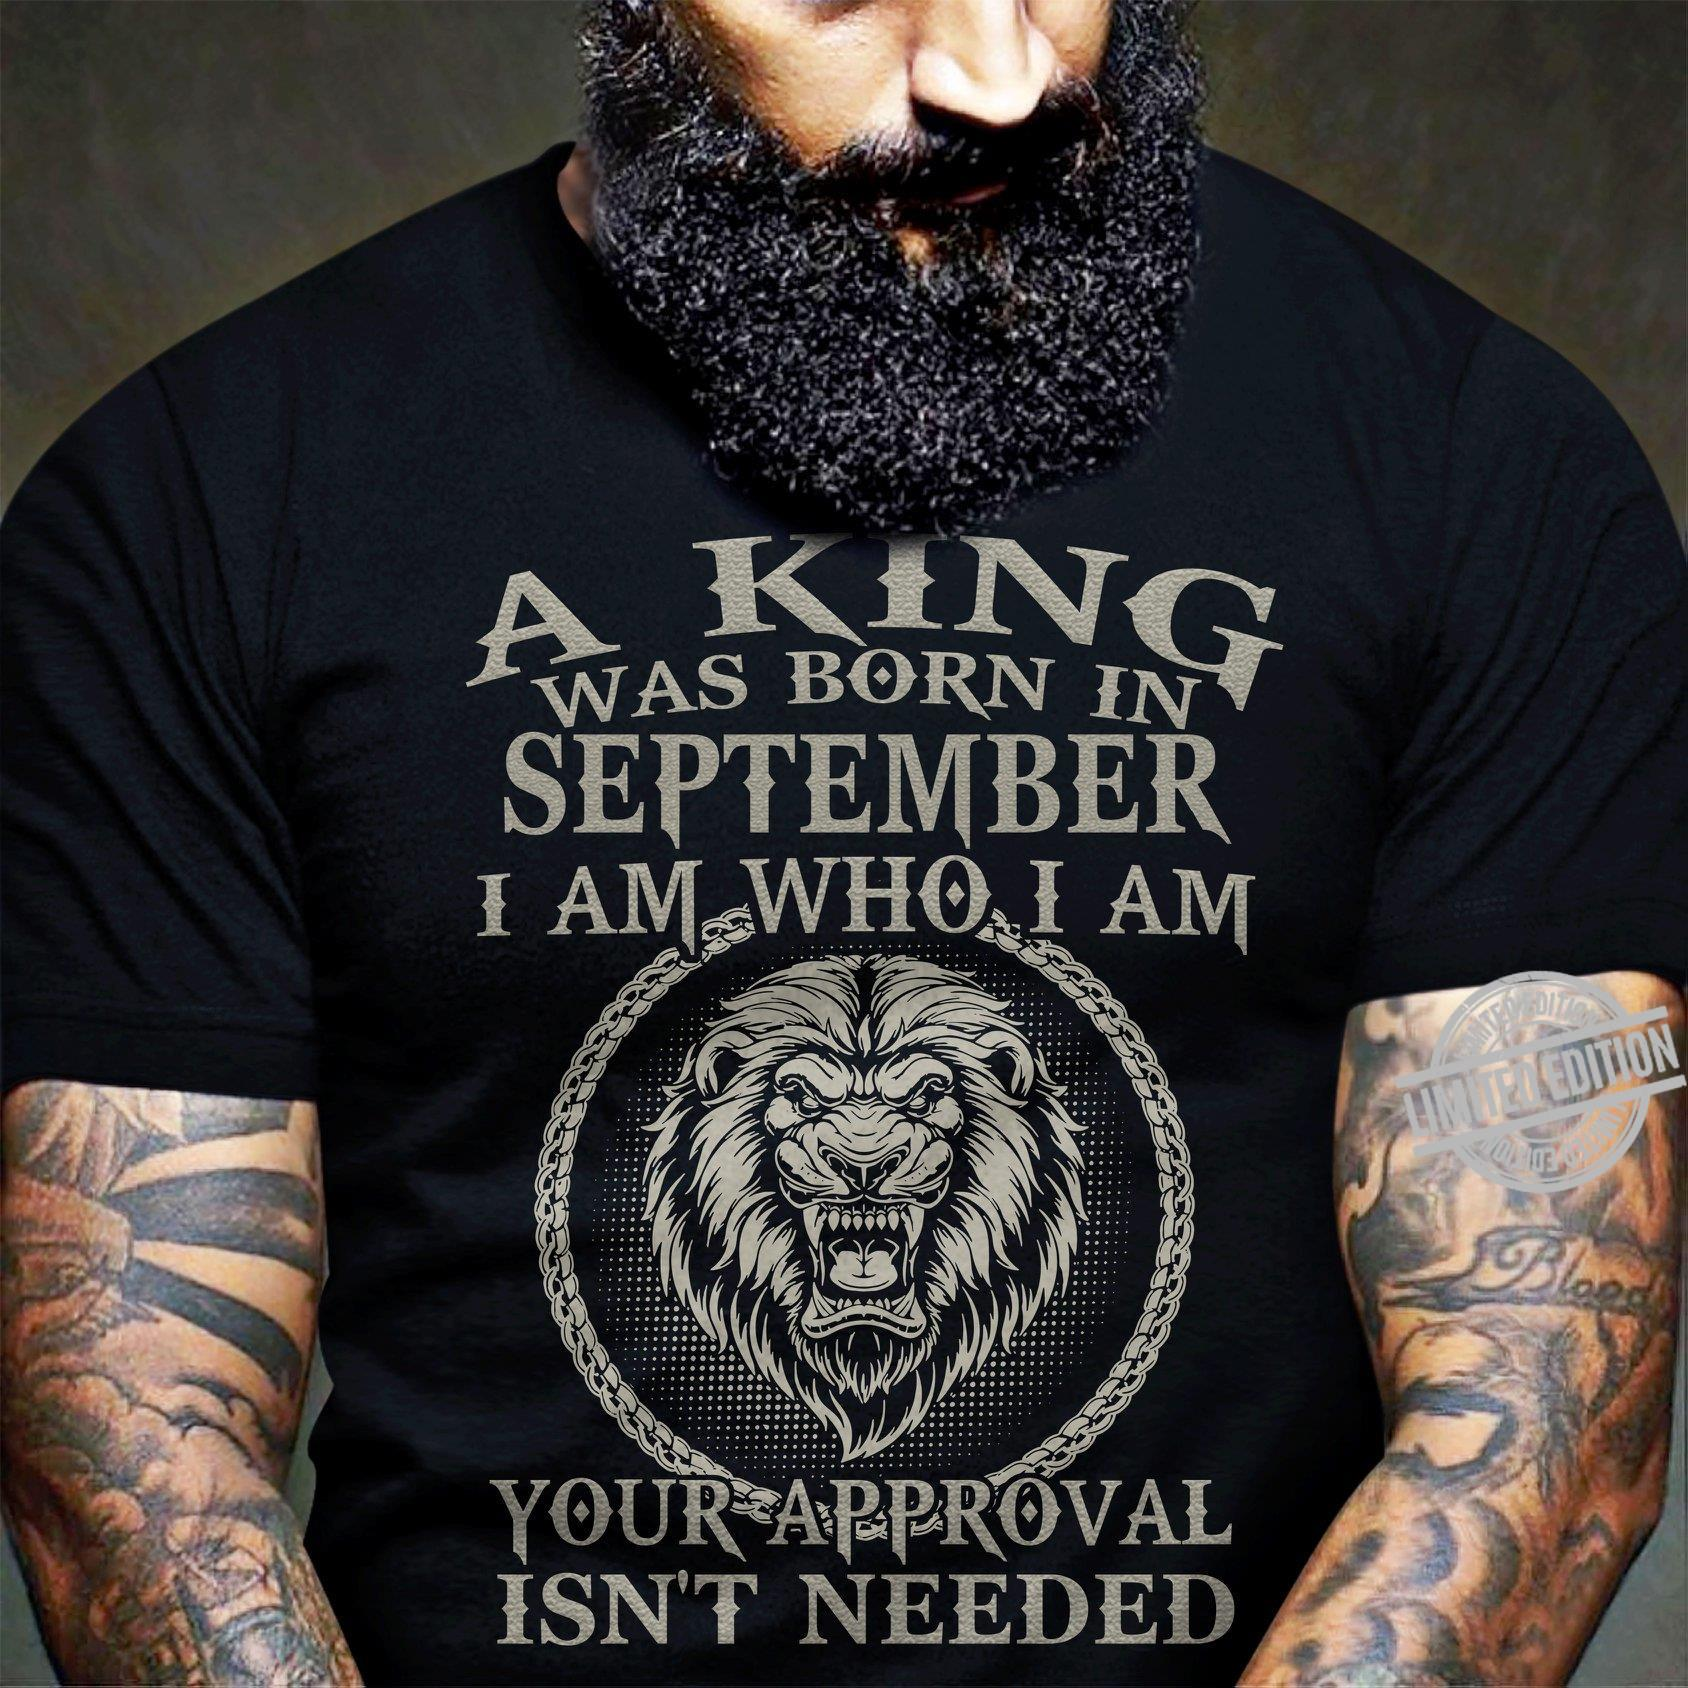 A King Was Born In September I Am Who I Am Your Approval Isn't Needed Shirt